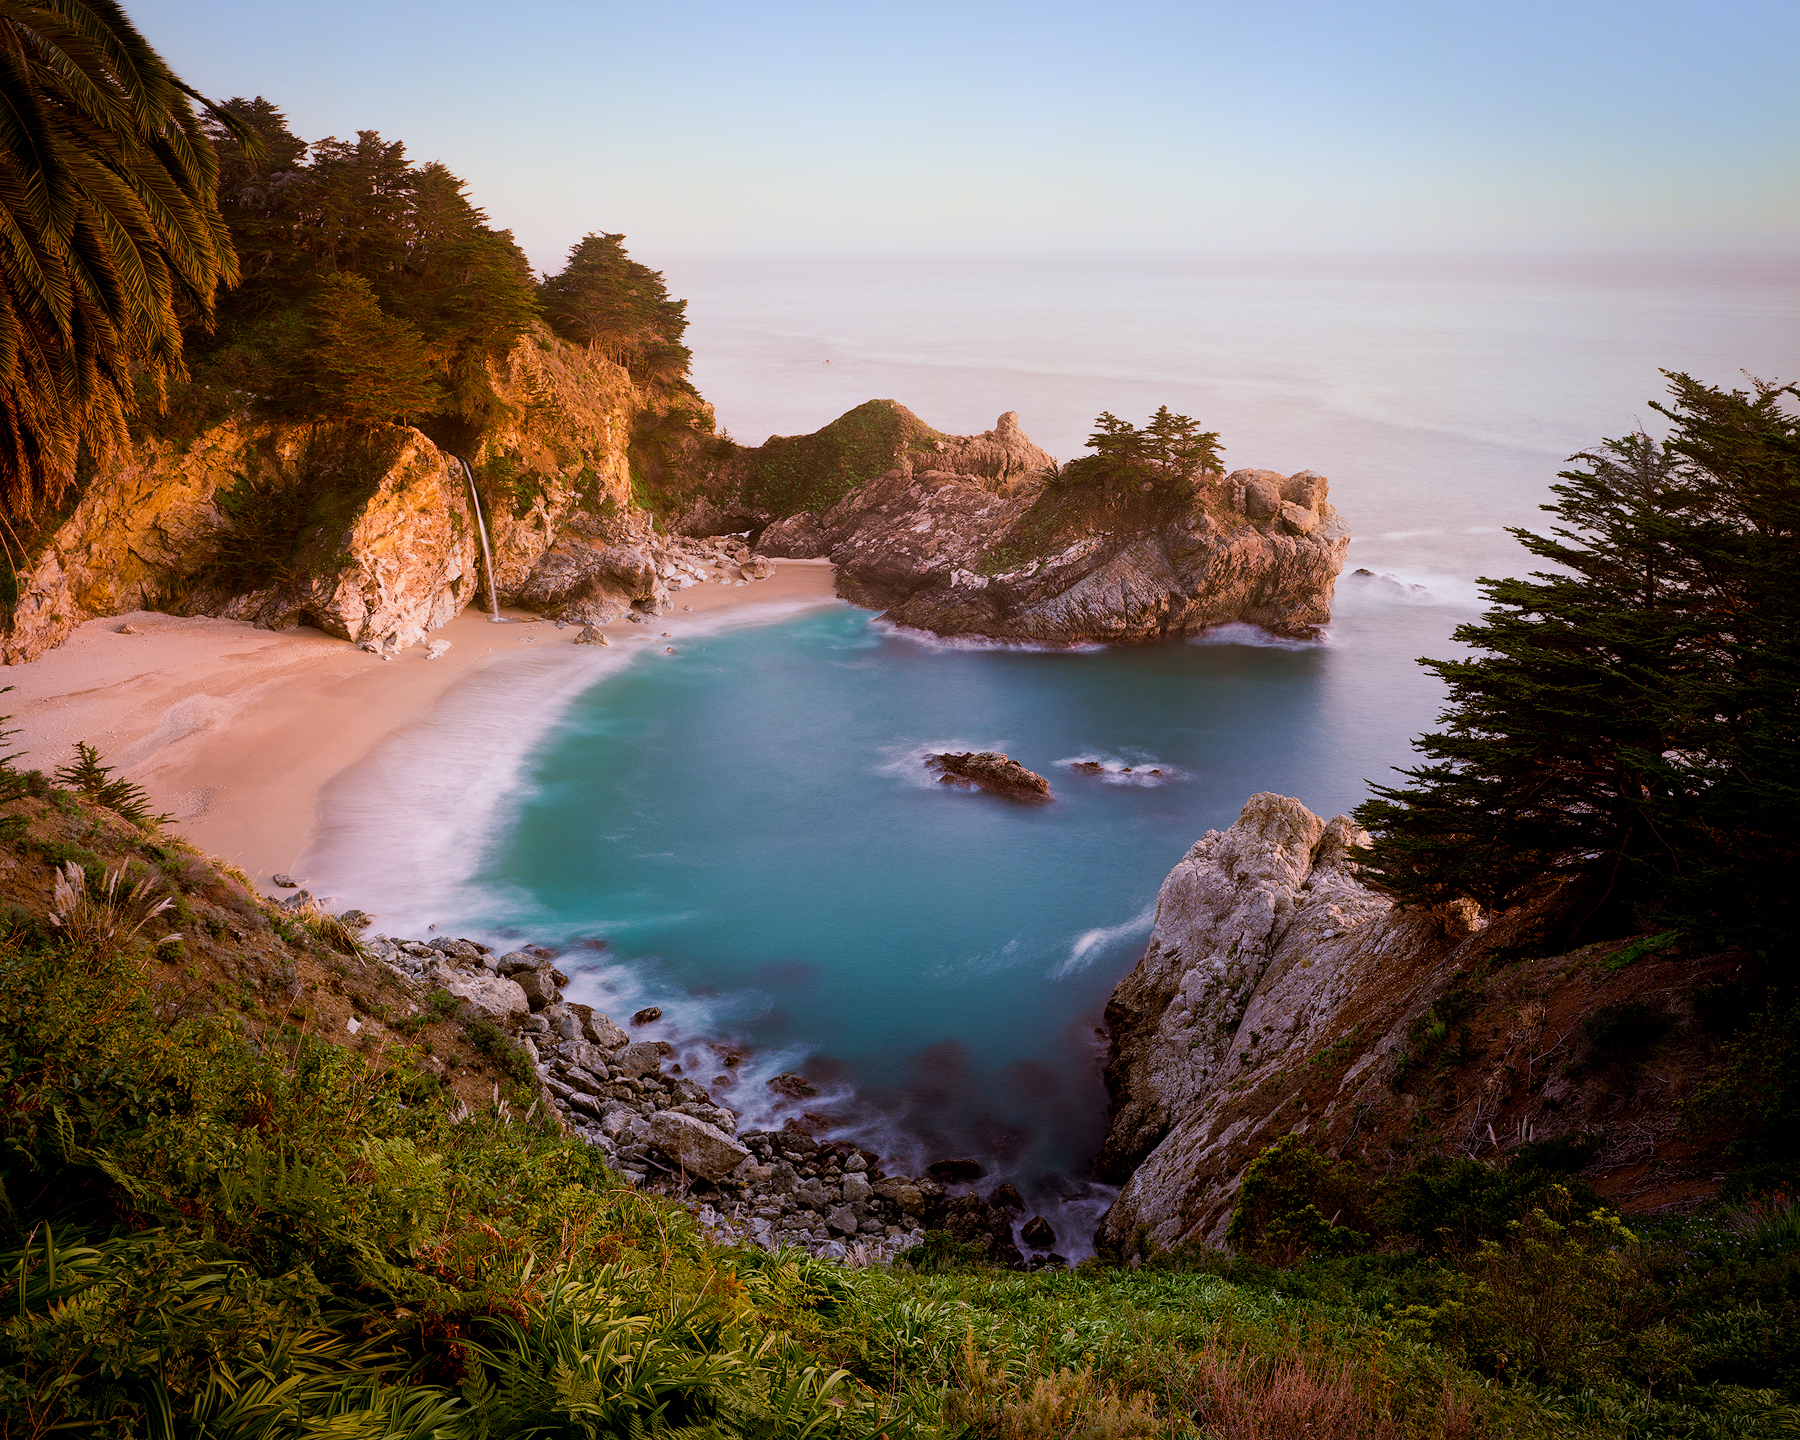 Daydreaming - McWay Falls, CA